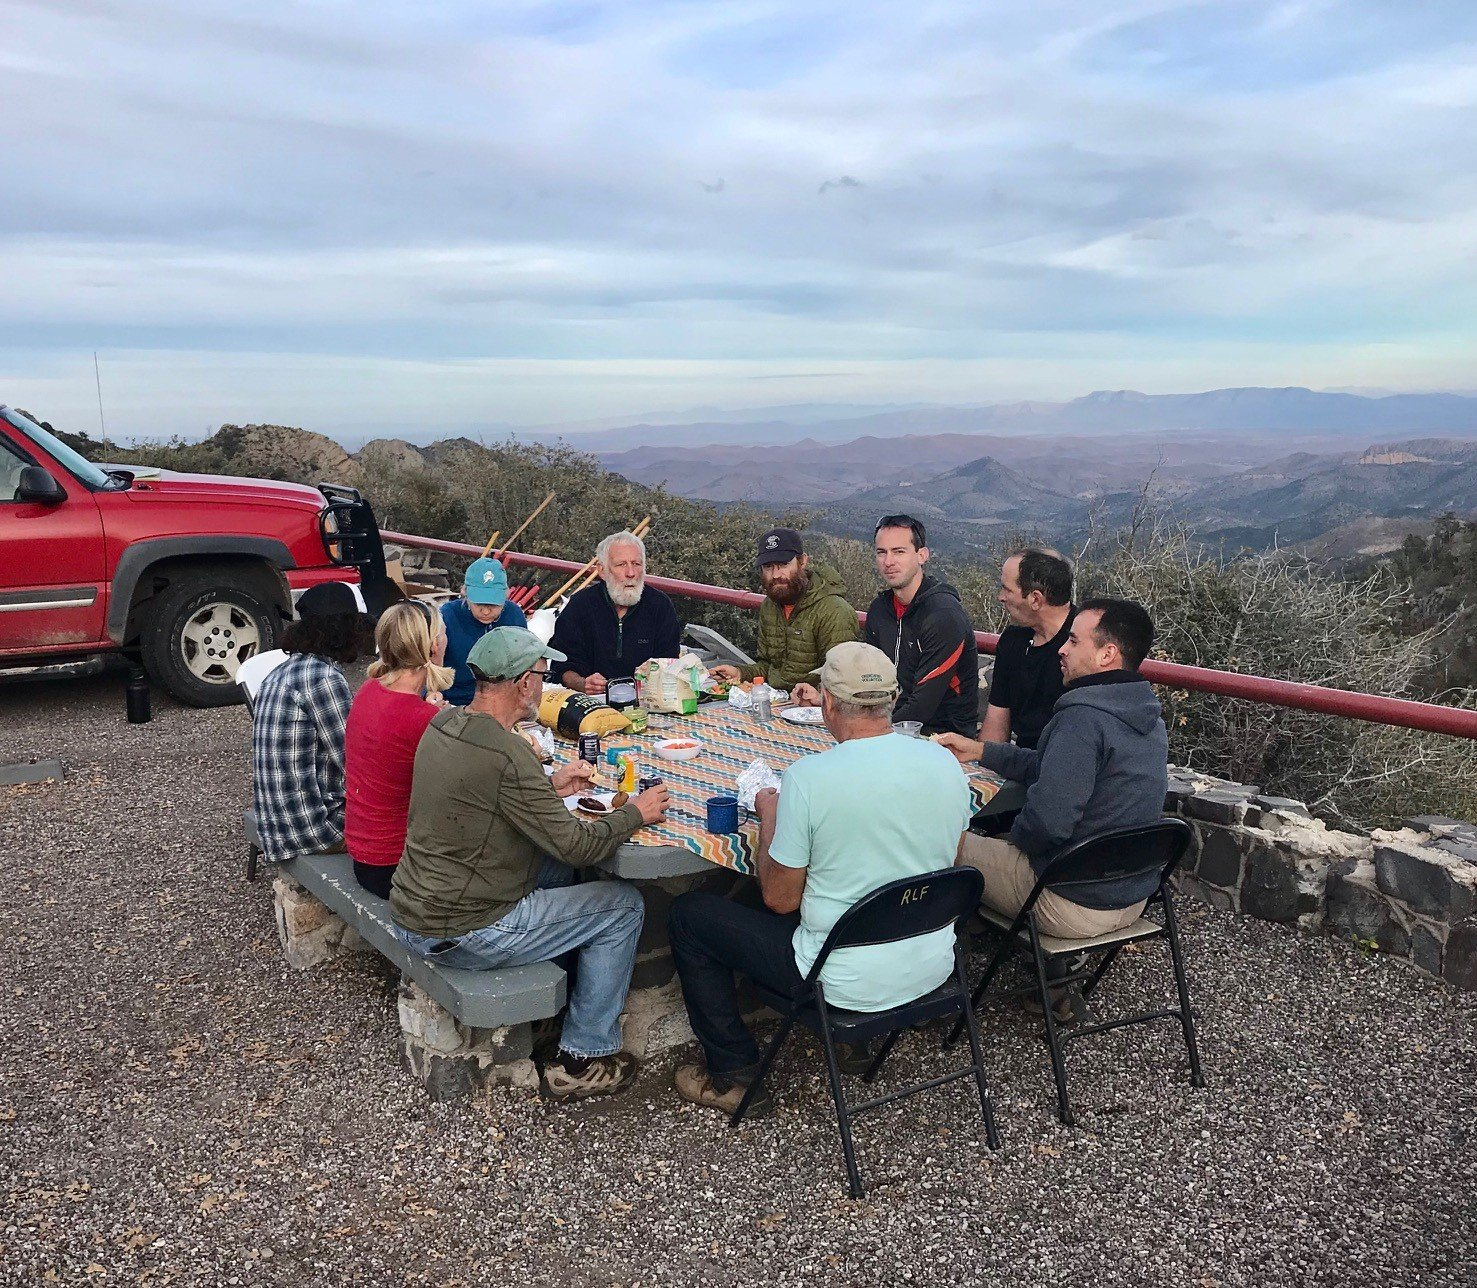 Dinner is served to volunteers after a long day working on the trail at Emory Pass.